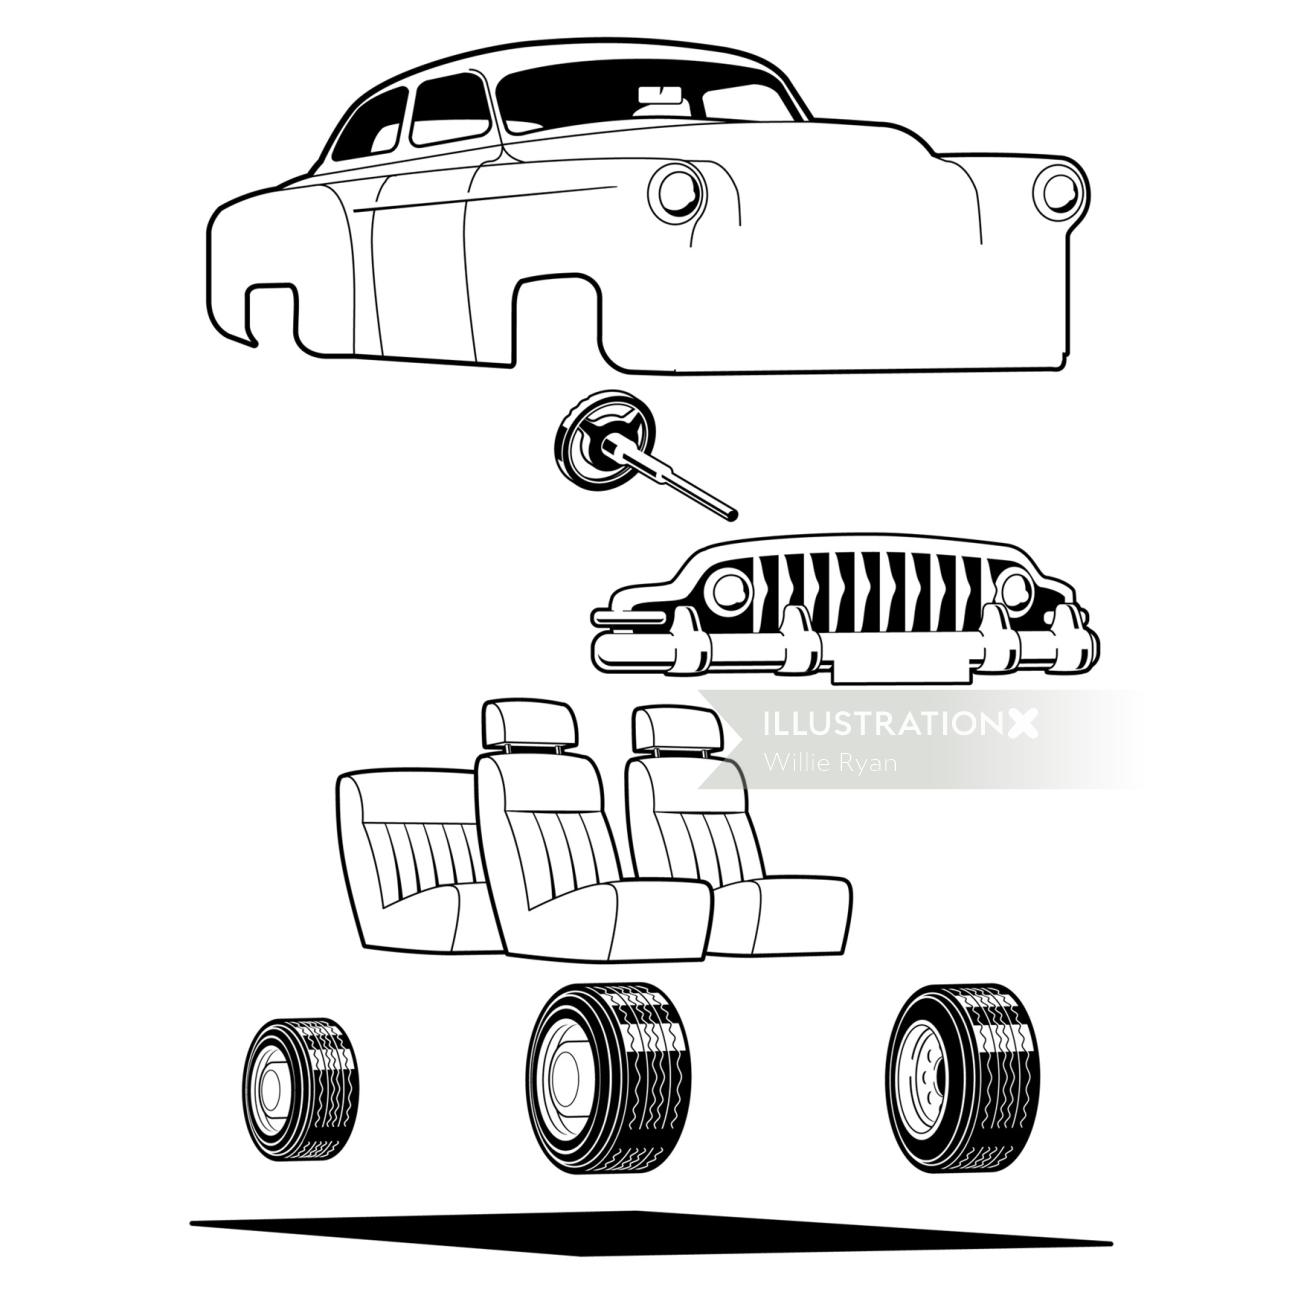 Black & white diagram of car body parts